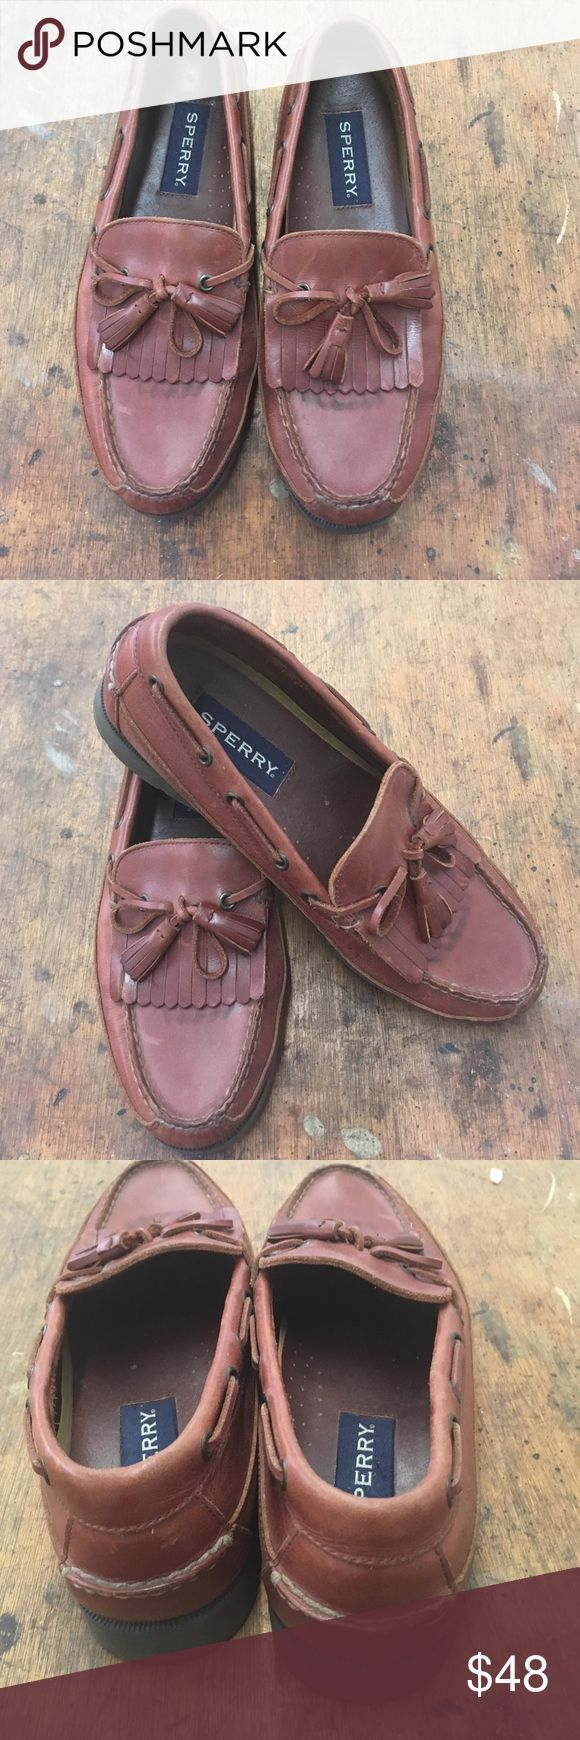 Men's Sperry Loafers Step out in a modern look constructed with care Sperry Shoes Loafers & Slip-Ons